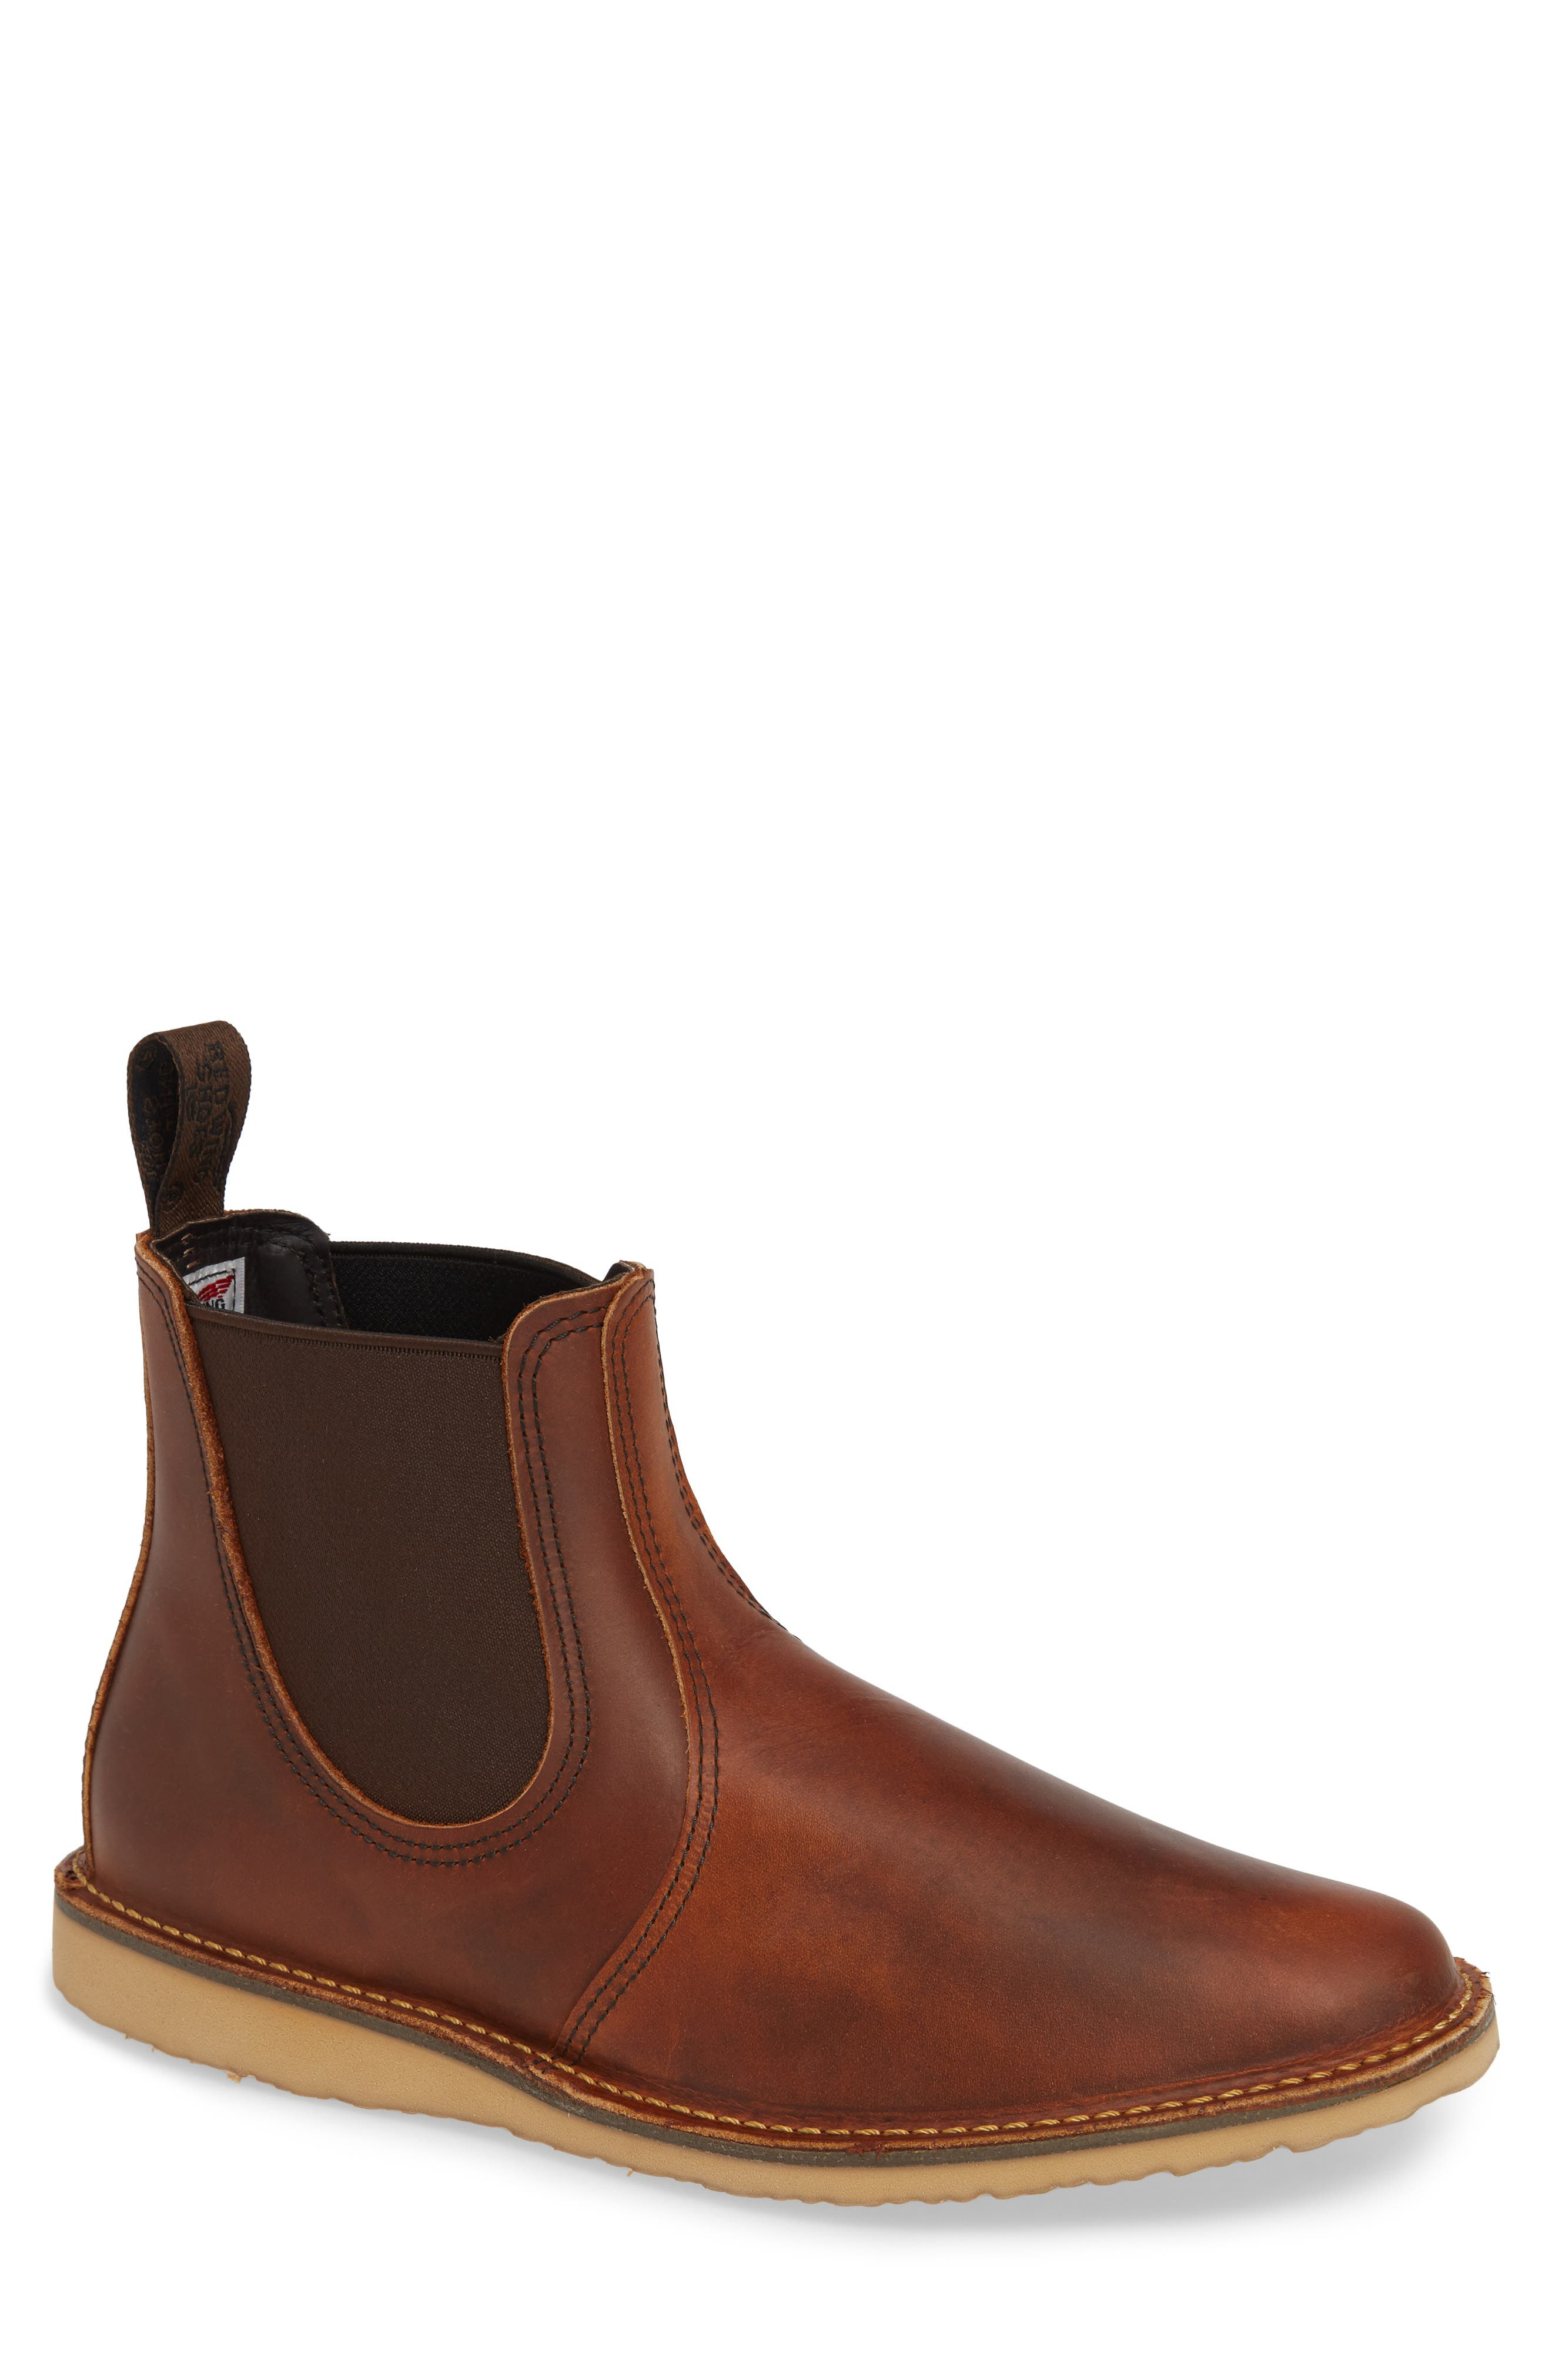 Chelsea Boot,                         Main,                         color, COPPER LEATHER